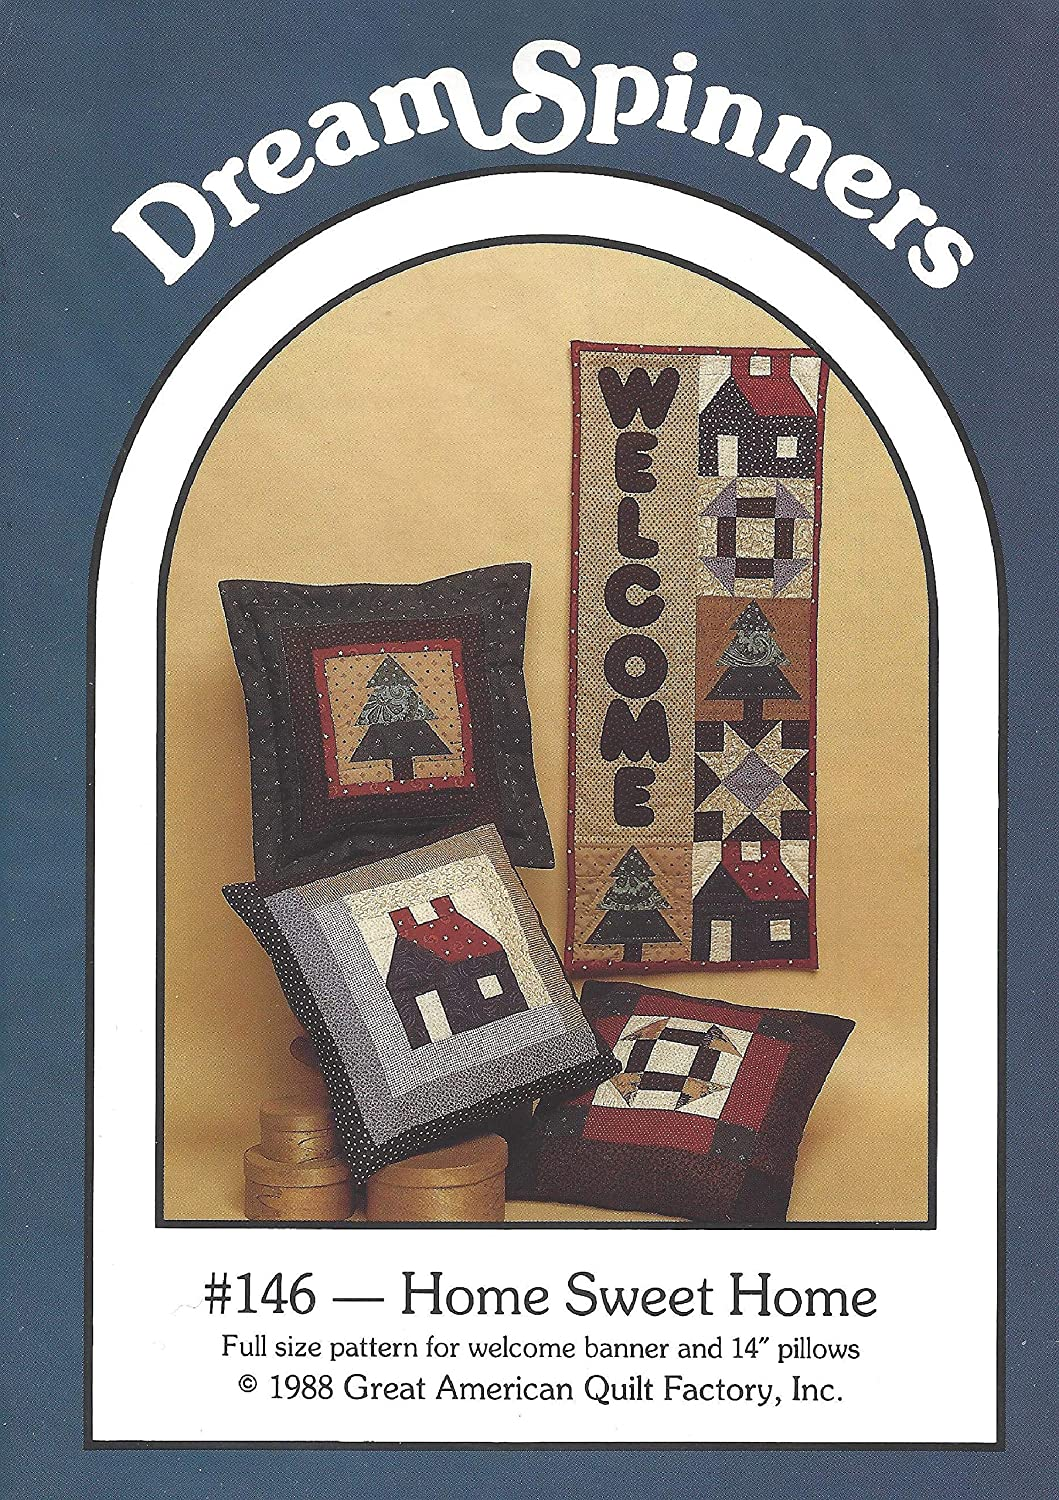 Amazon Com Home Sweet Home Quilting Pattern For Welcome Banner And 14 Pillows From Dream Spinners 146 By Great American Quilt Factory Arts Crafts Sewing